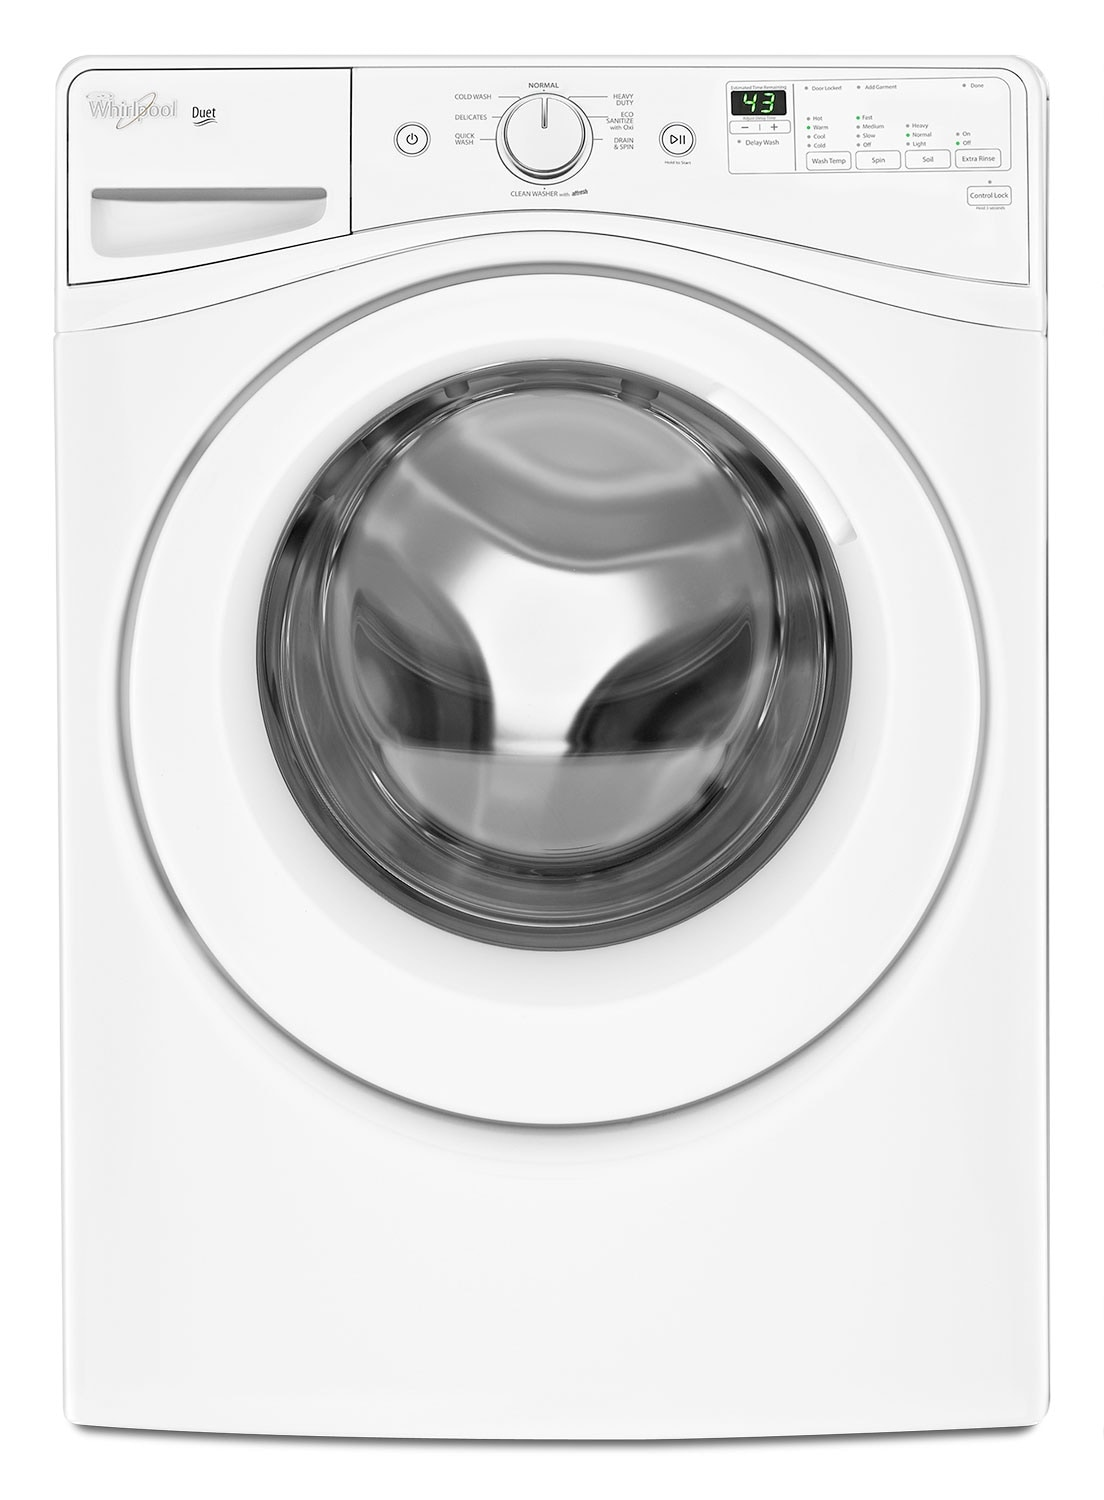 Washers and Dryers - Whirlpool® Duet® 4.8 Cu. Ft. High-Efficiency Front-Load Washer - White